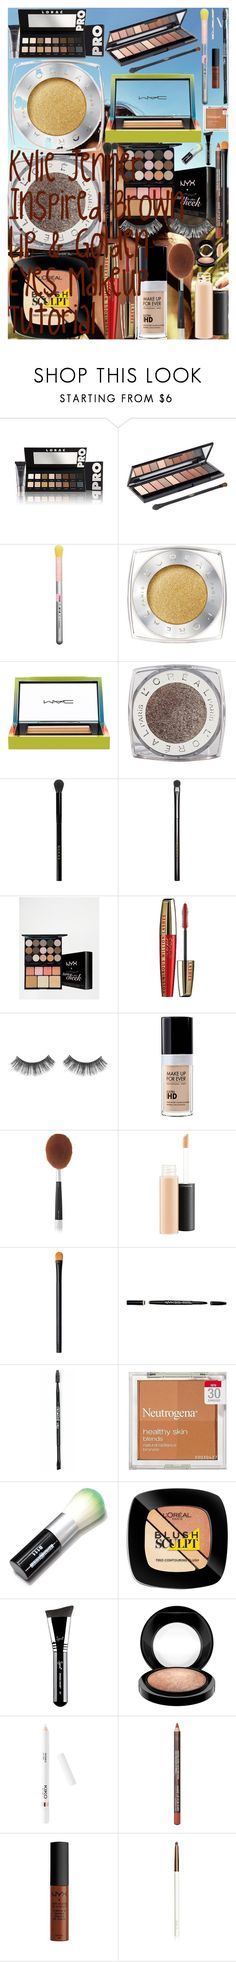 Kylie Jenner Inspired Brown Lip & Golden Eyes Makeup Tutorial by oroartye-1 on Polyvore featuring beauty, Artis, Gucci, LORAC, MAC Cosmetics, MAKE UP FOR EVER, NARS Cosmetics, lilah b., NYX and L'Oréal Paris